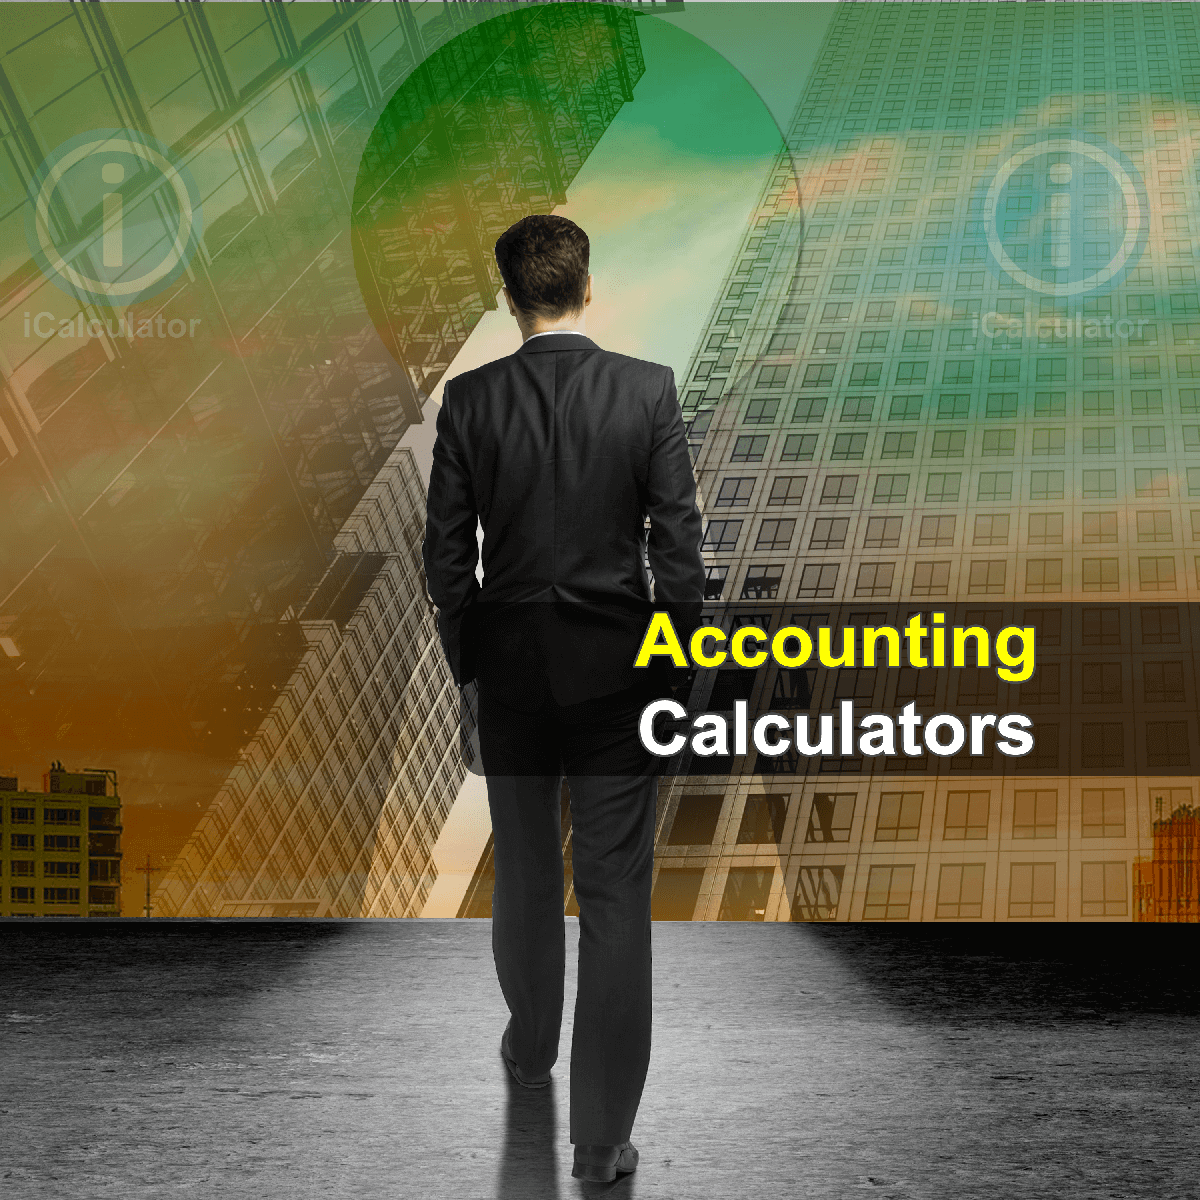 Accounting Calculators. This image shows a busienss owner review best accounting practice to formulate the next financial years business plan using financial kpi based on his informed decisions made using the information provided on the accounting calculators provided by iCalculator.